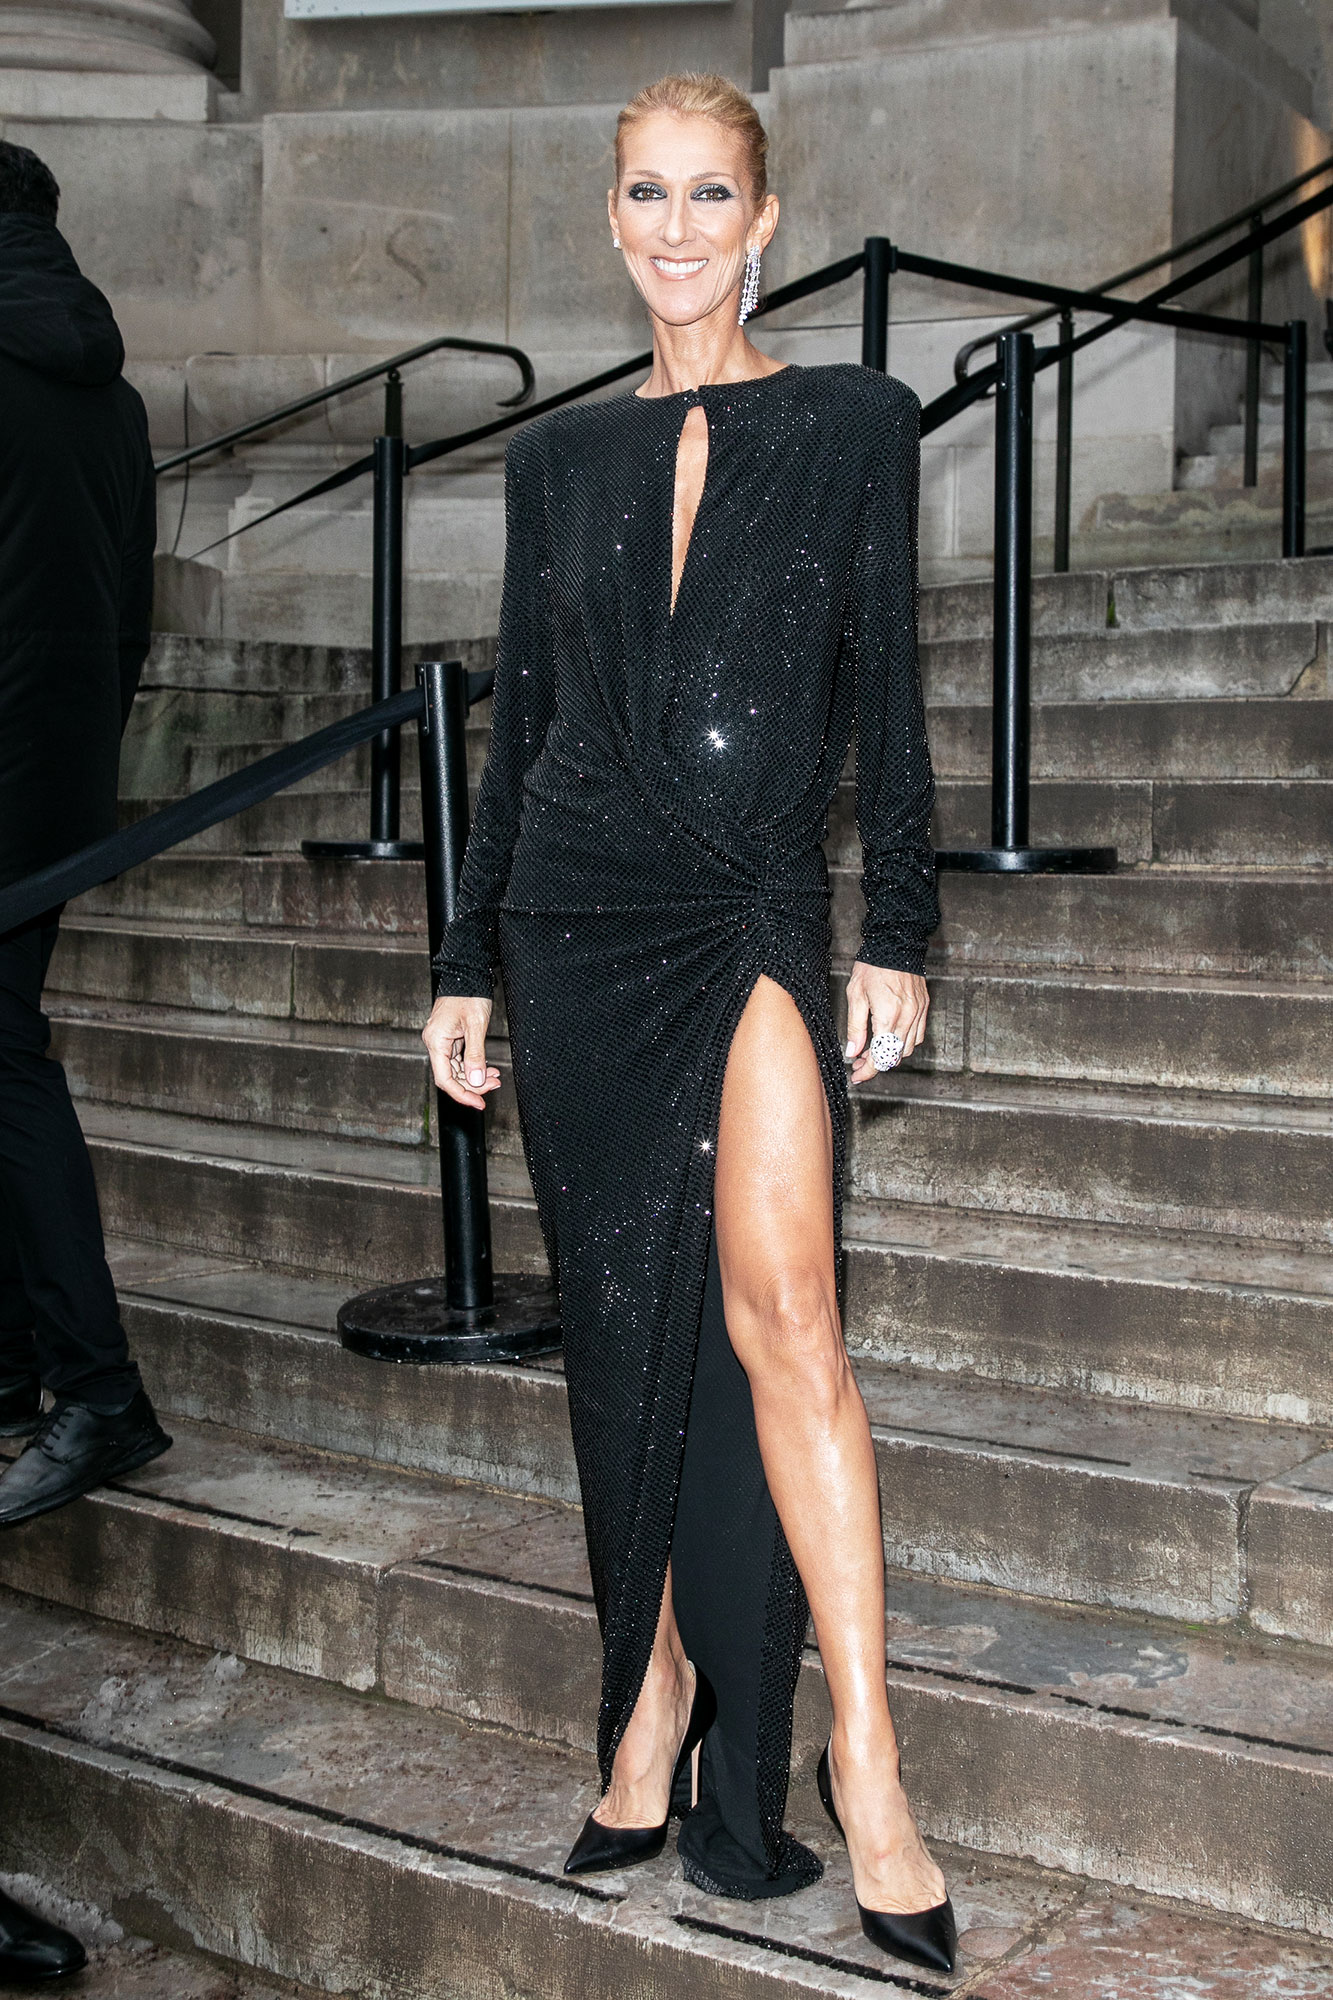 Celine Dion - Offering her own take on Angelina Jolie's epic gam-baring moment at the 2012 Oscars, the music icon sparkled in a black gown at Alexandre Vauthier on Tuesday, January 22.